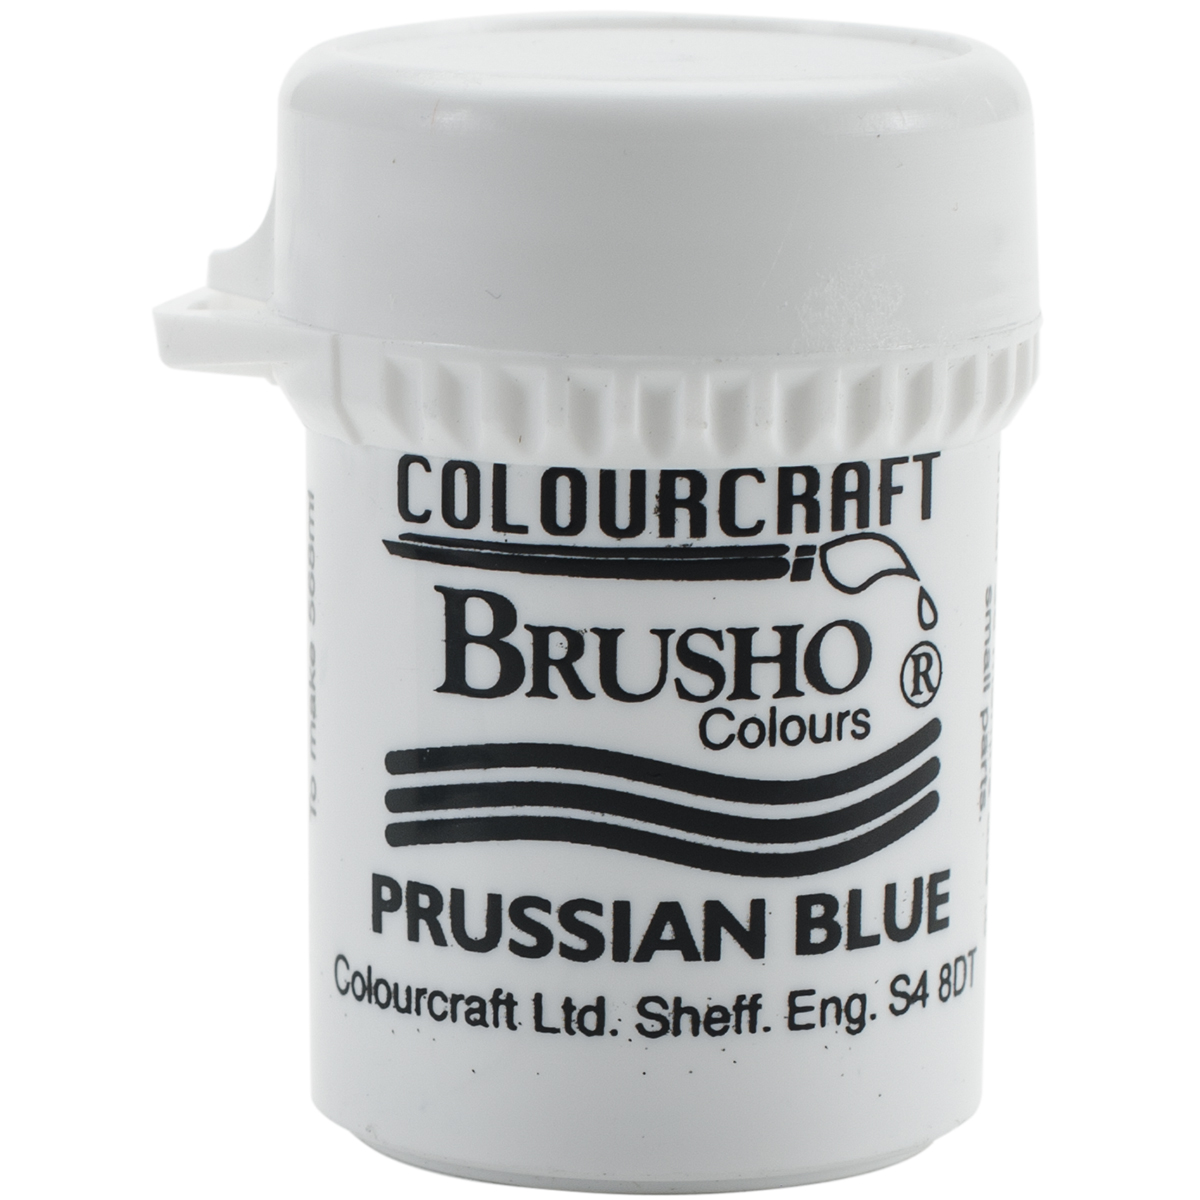 Brusho Crystal Colour 15g-Prussian Blue